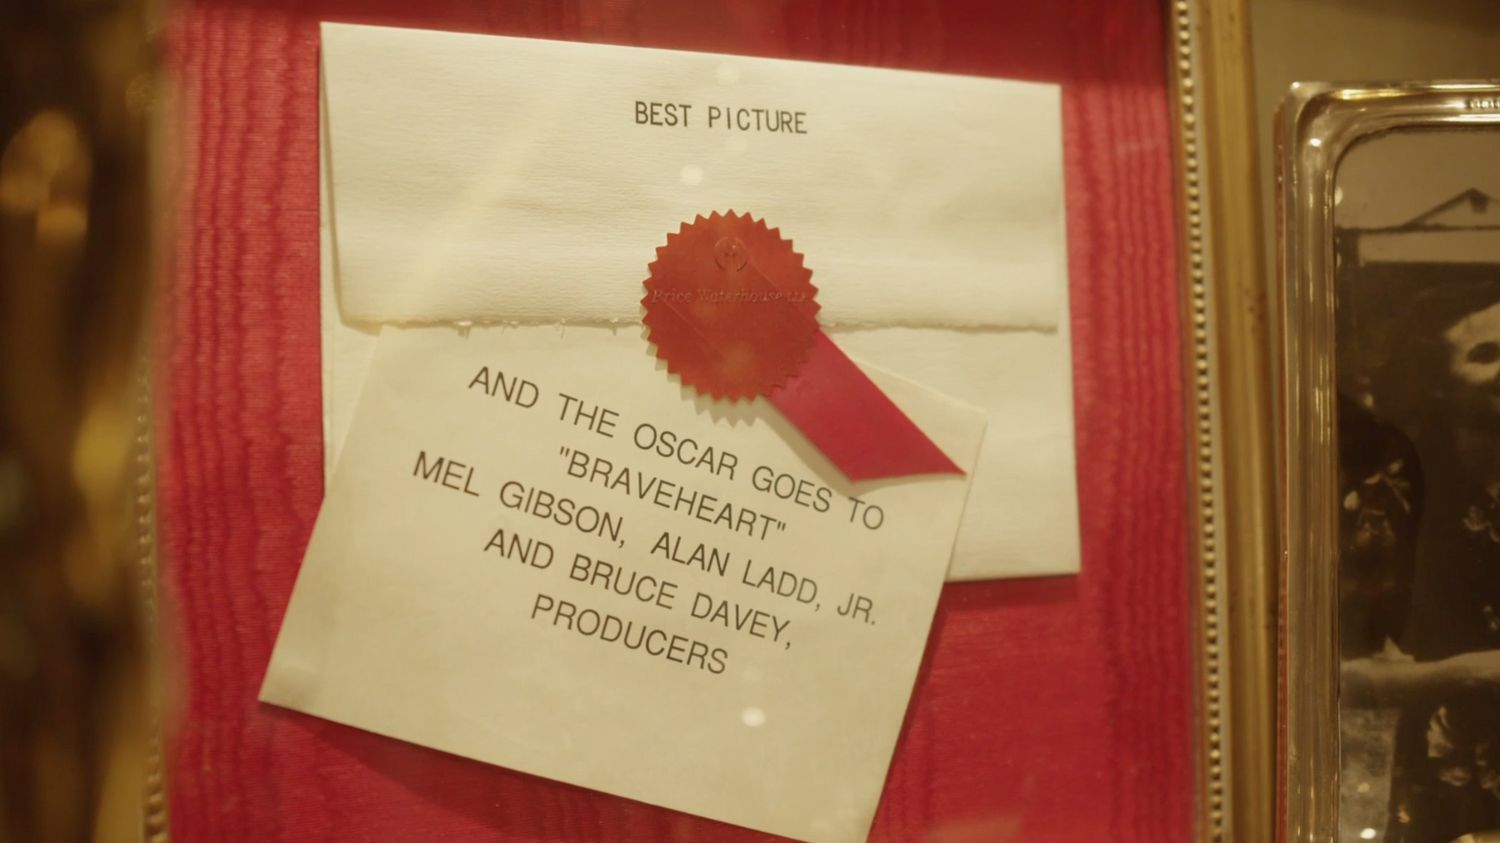 Close up of Best Picture Envelope